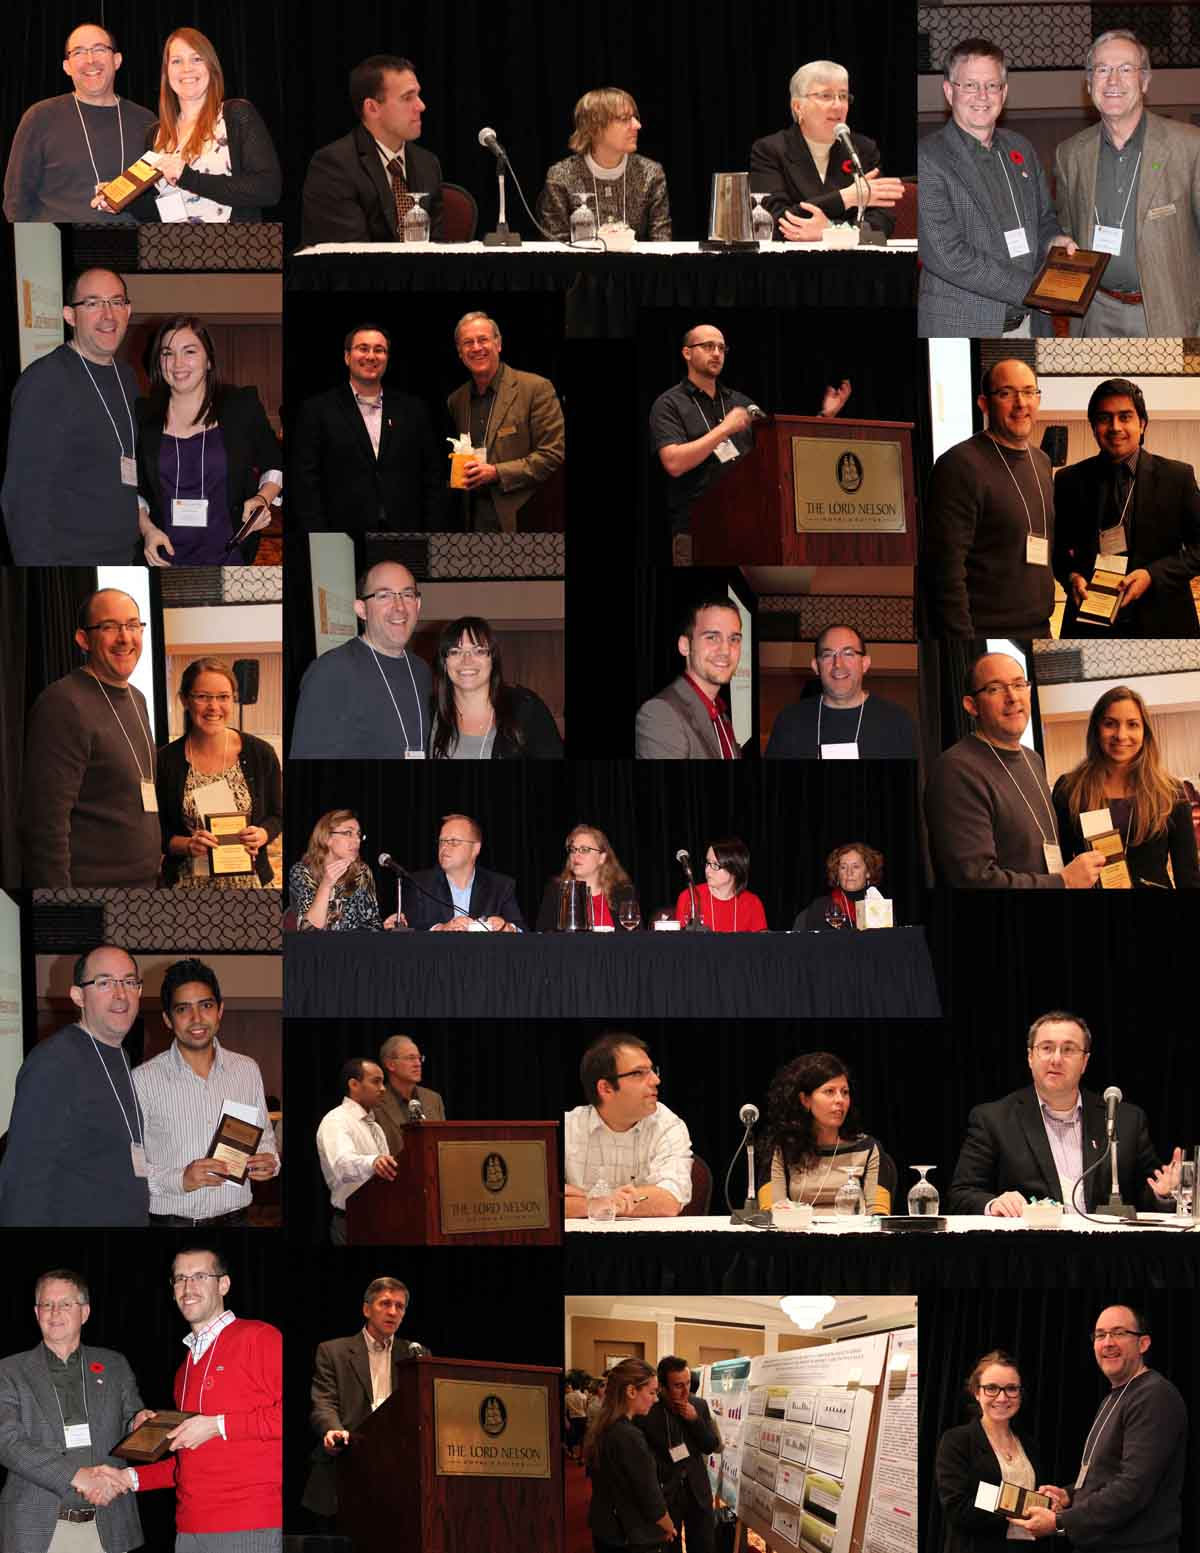 2012 Conference Photos